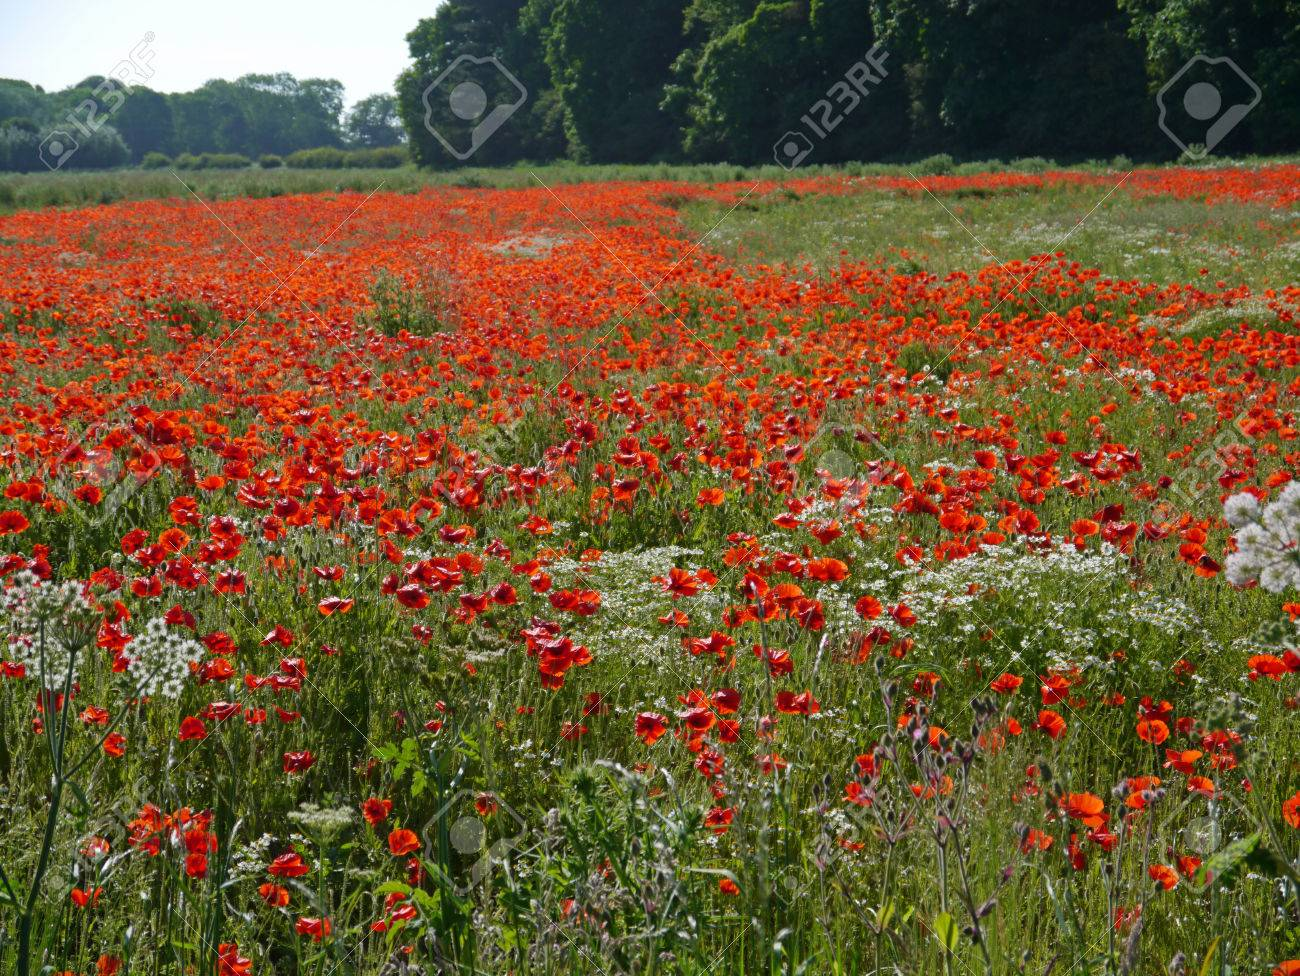 A meadow full of poppies and grasses in rural English countryside Standard-Bild - 81912967